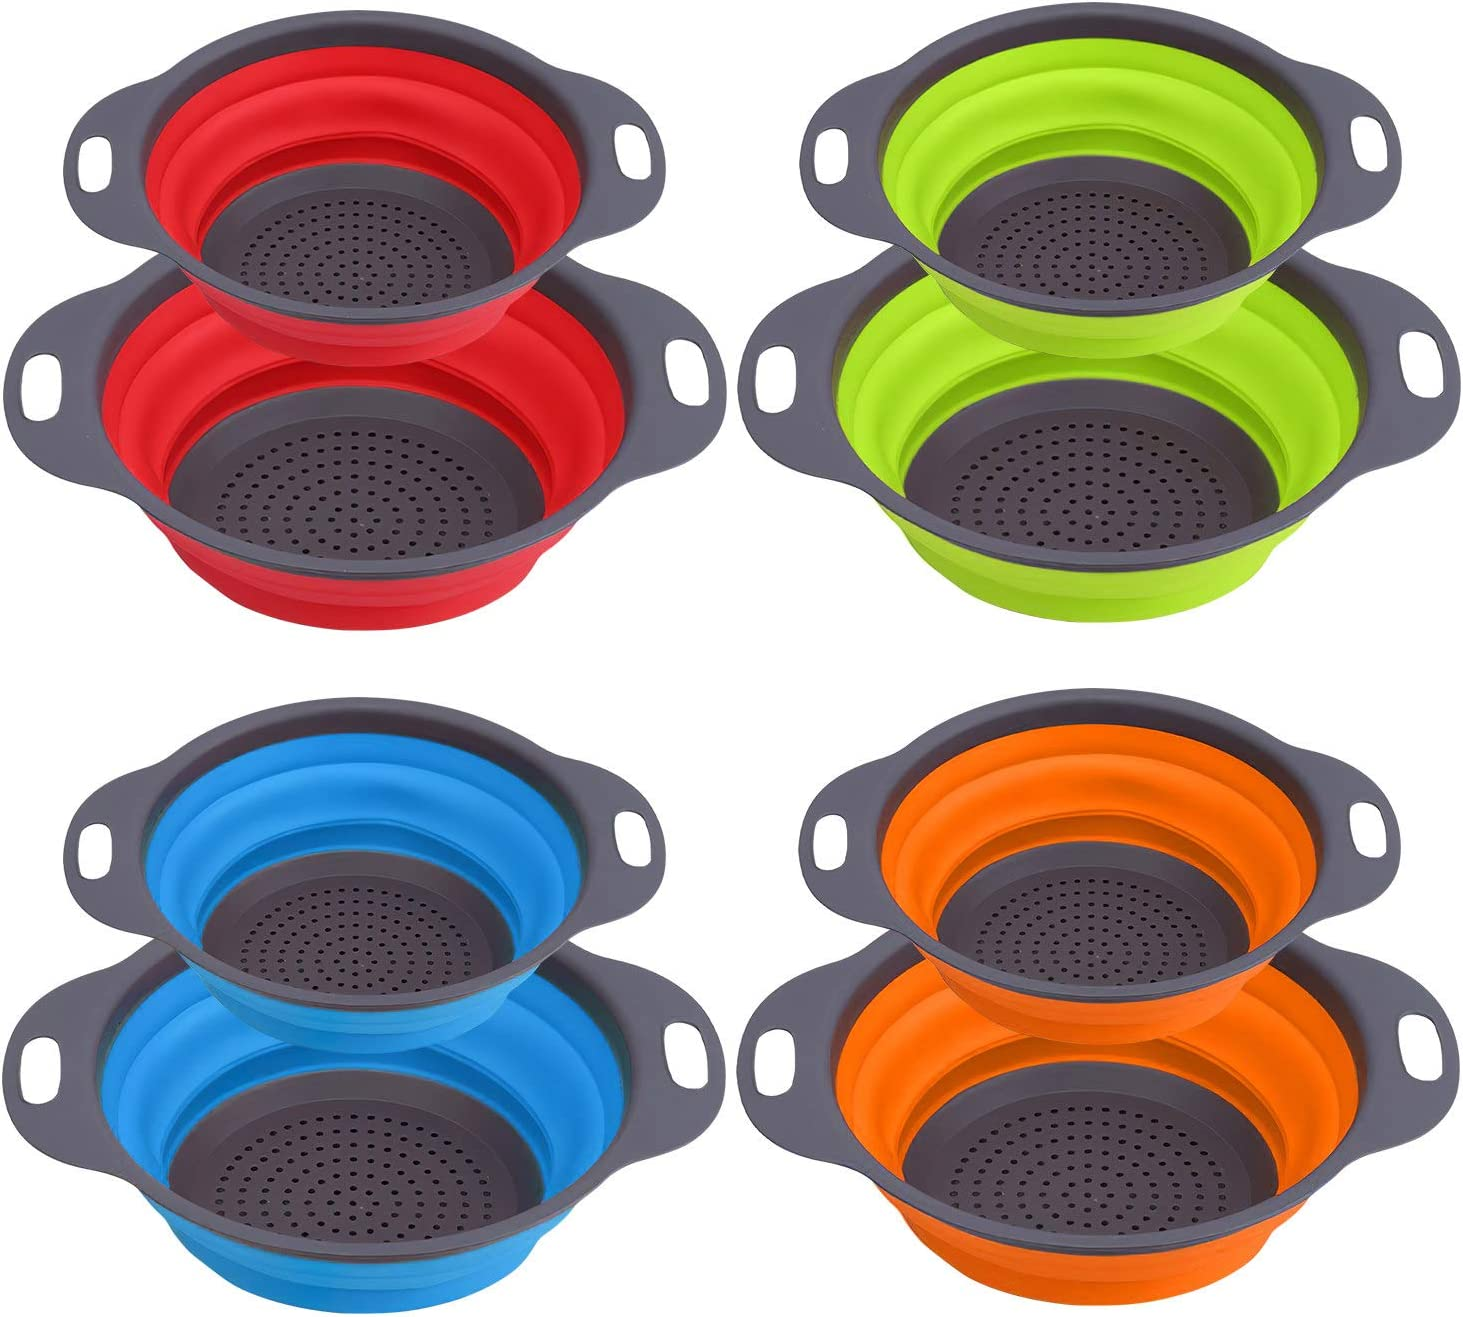 Hedume Set of 8 Collapsible Colander, Food-Grade Silicone Kitchen Space Saver Folding Strainer Colander Set - 4 pcs 8 in and 4 pcs 9.5 in - Perfect for Draining Pasta, Vegetable and Fruit